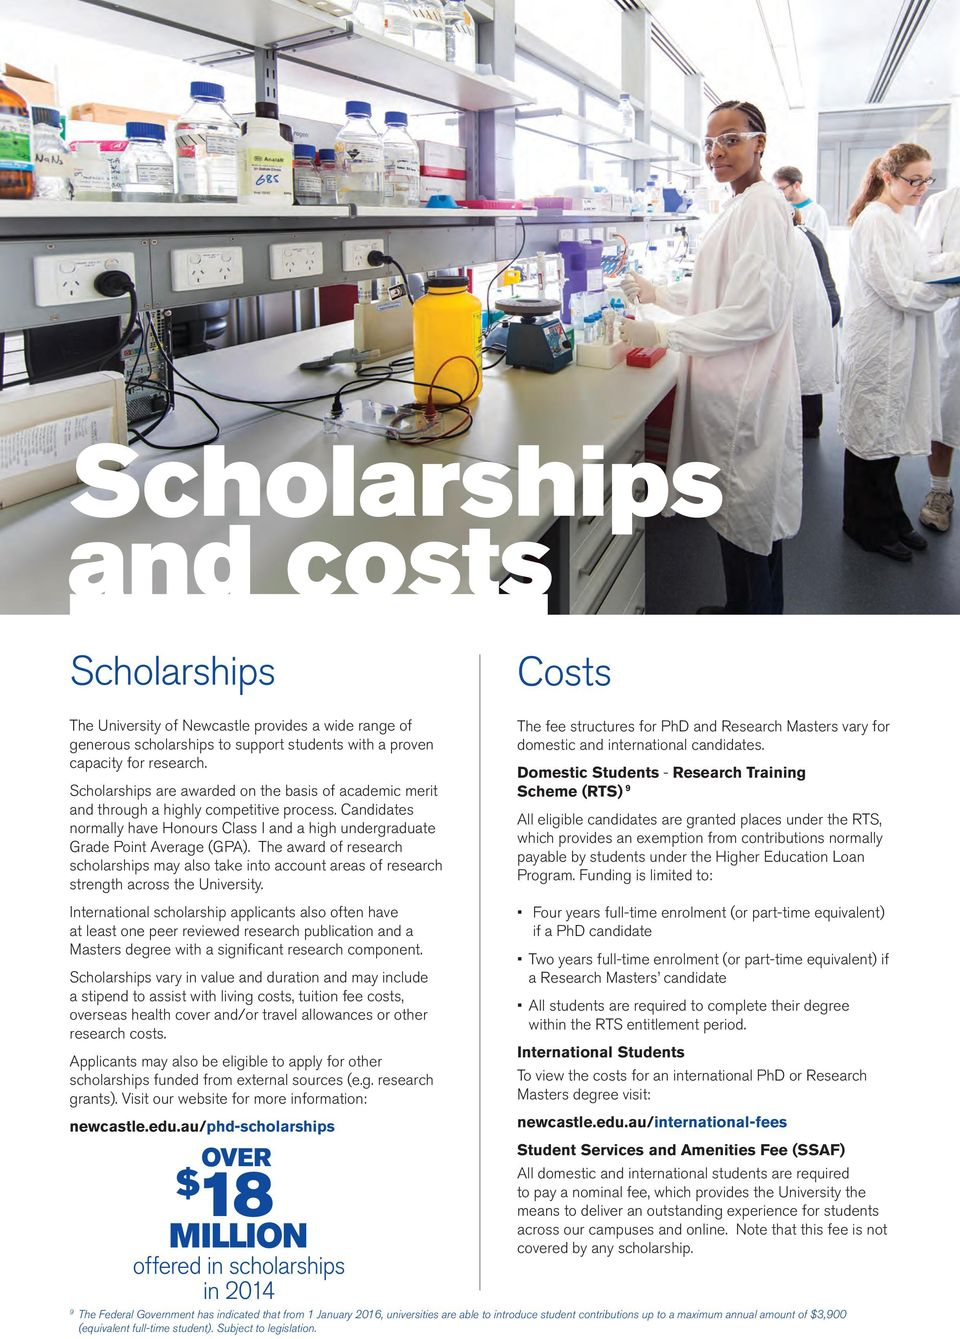 The award of research scholarships may also take into account areas of research strength across the University.